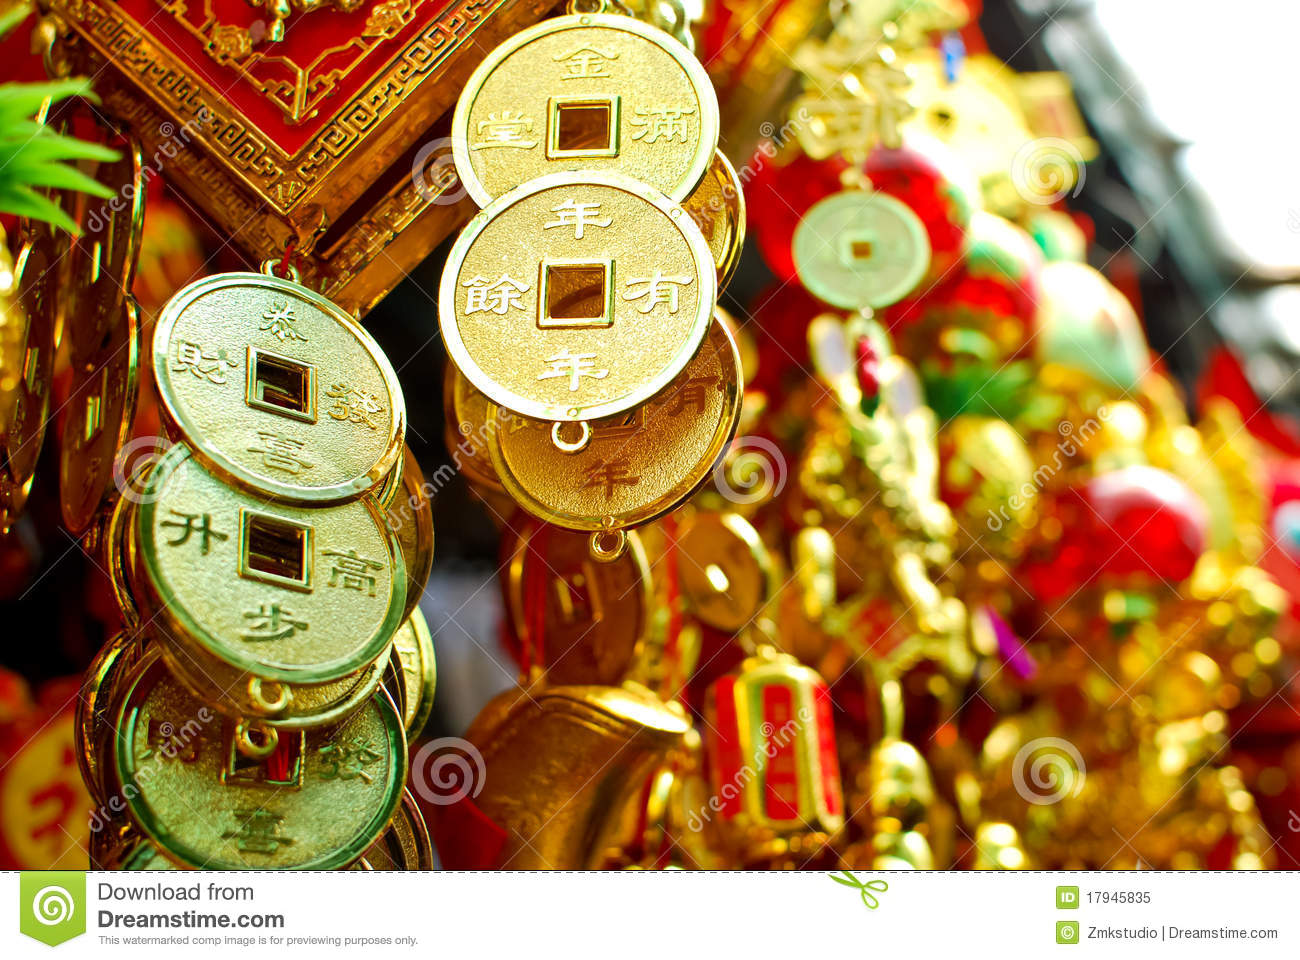 Chinese New Year Decoration Items Royalty Free Stock Photo ...